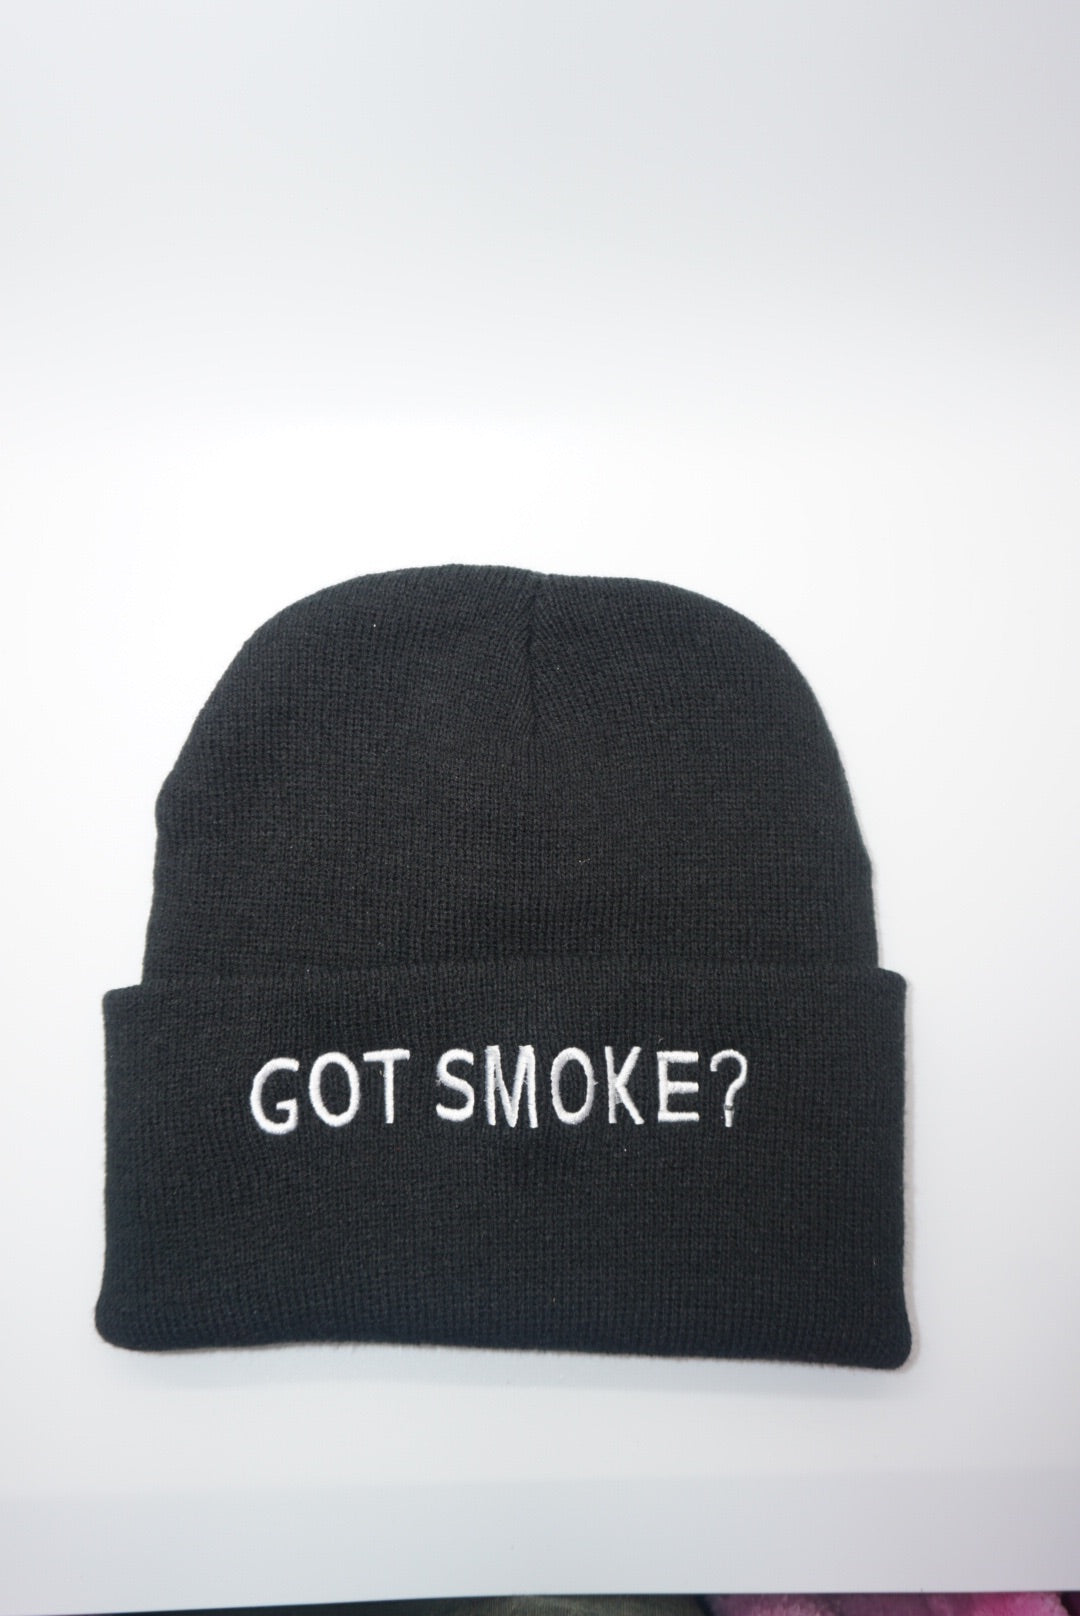 Got Smoke? Beanie Hat